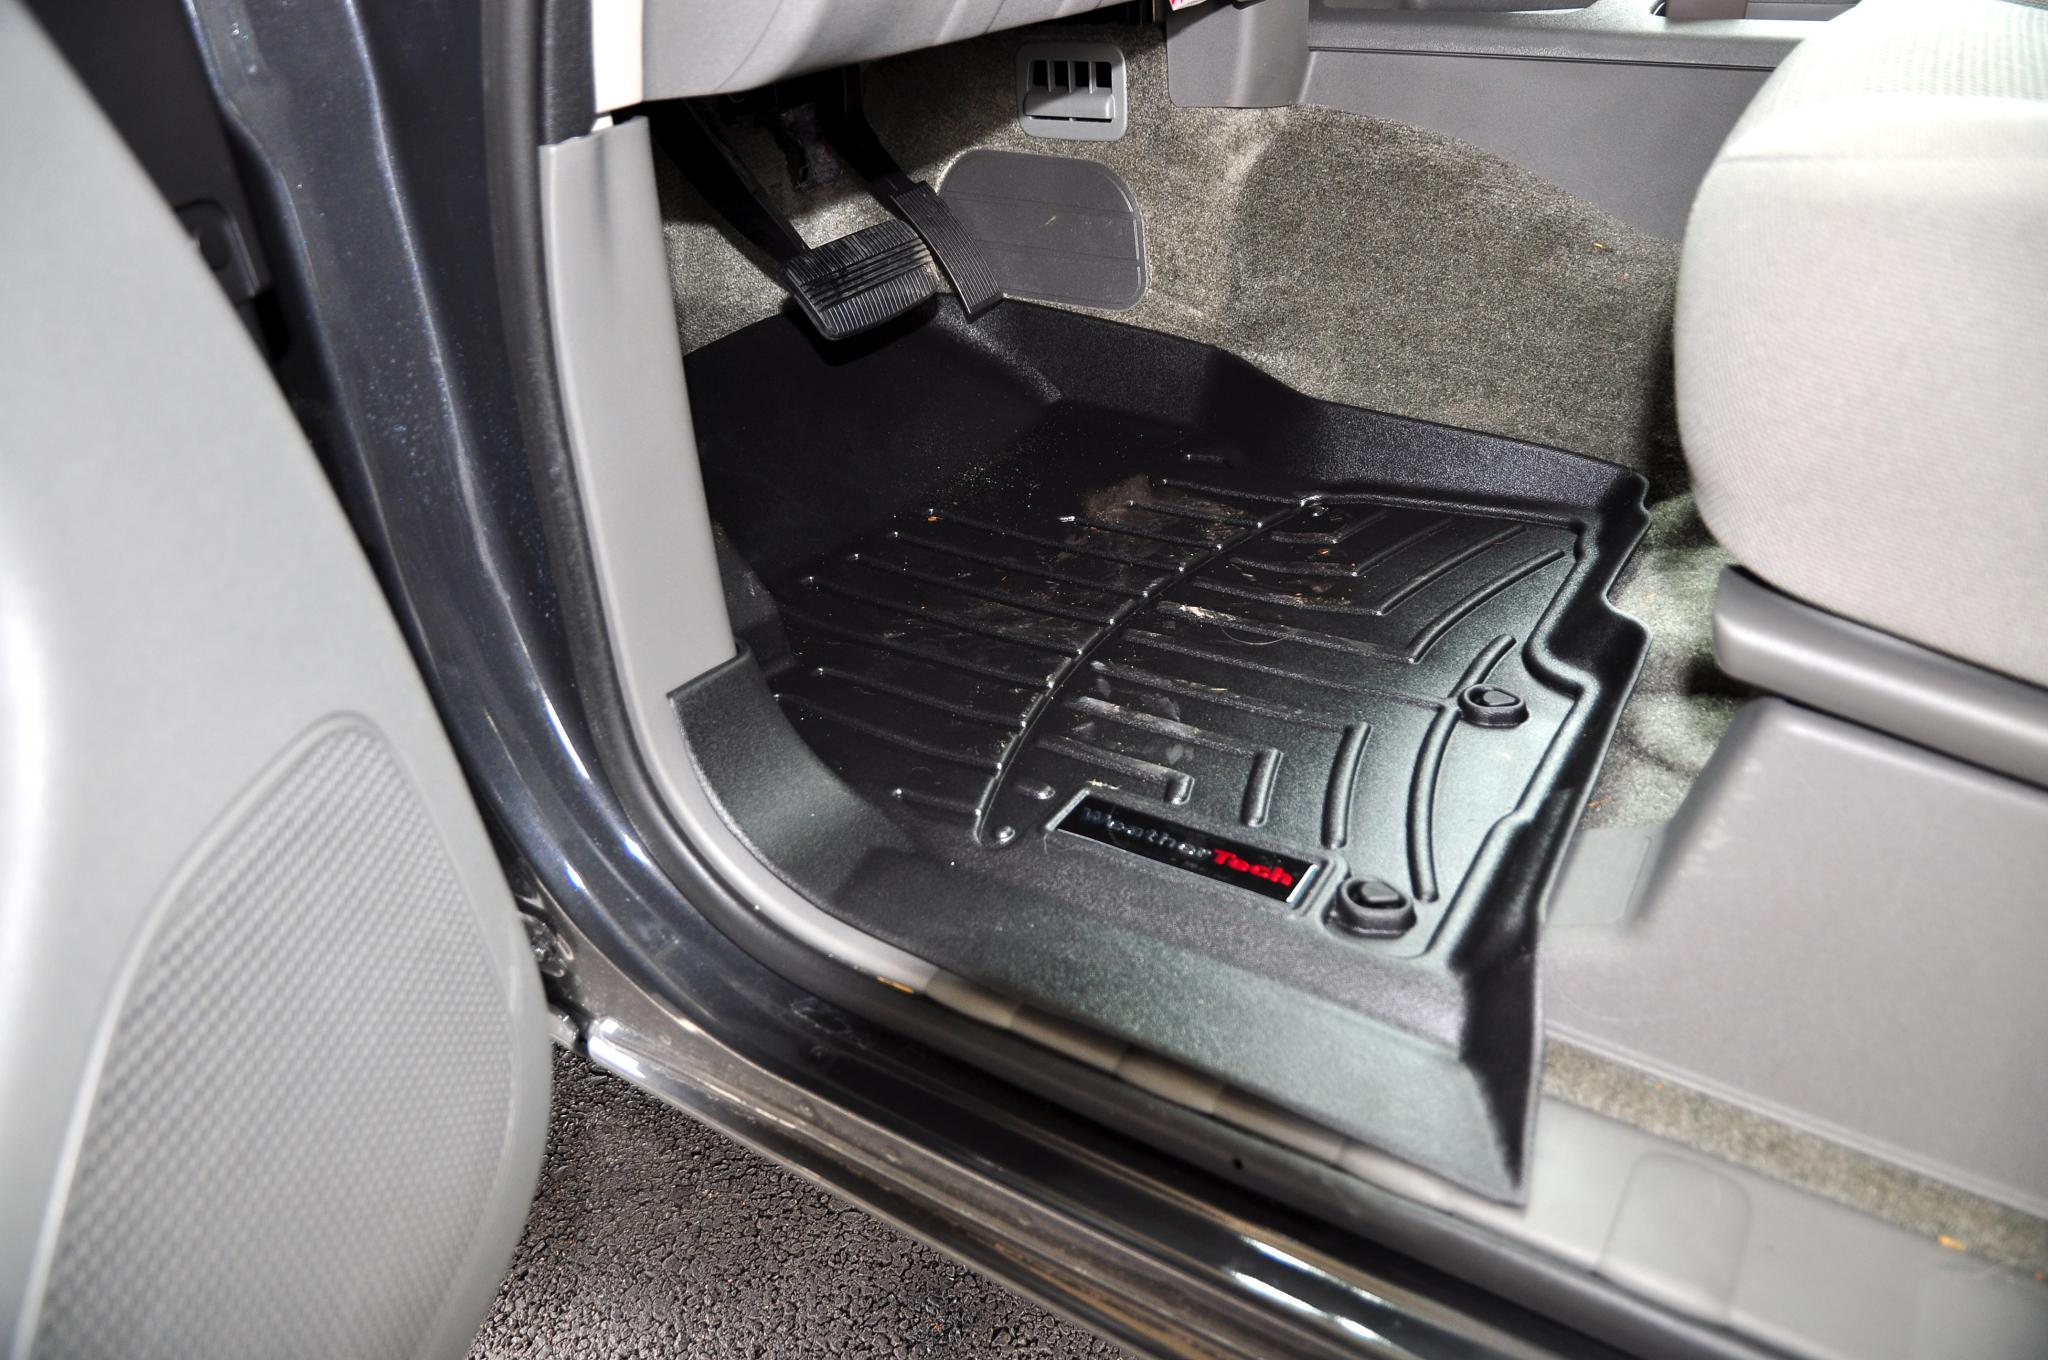 mats weather co digitalfit aetherair ts tech weathertech liners asli floor car fit form